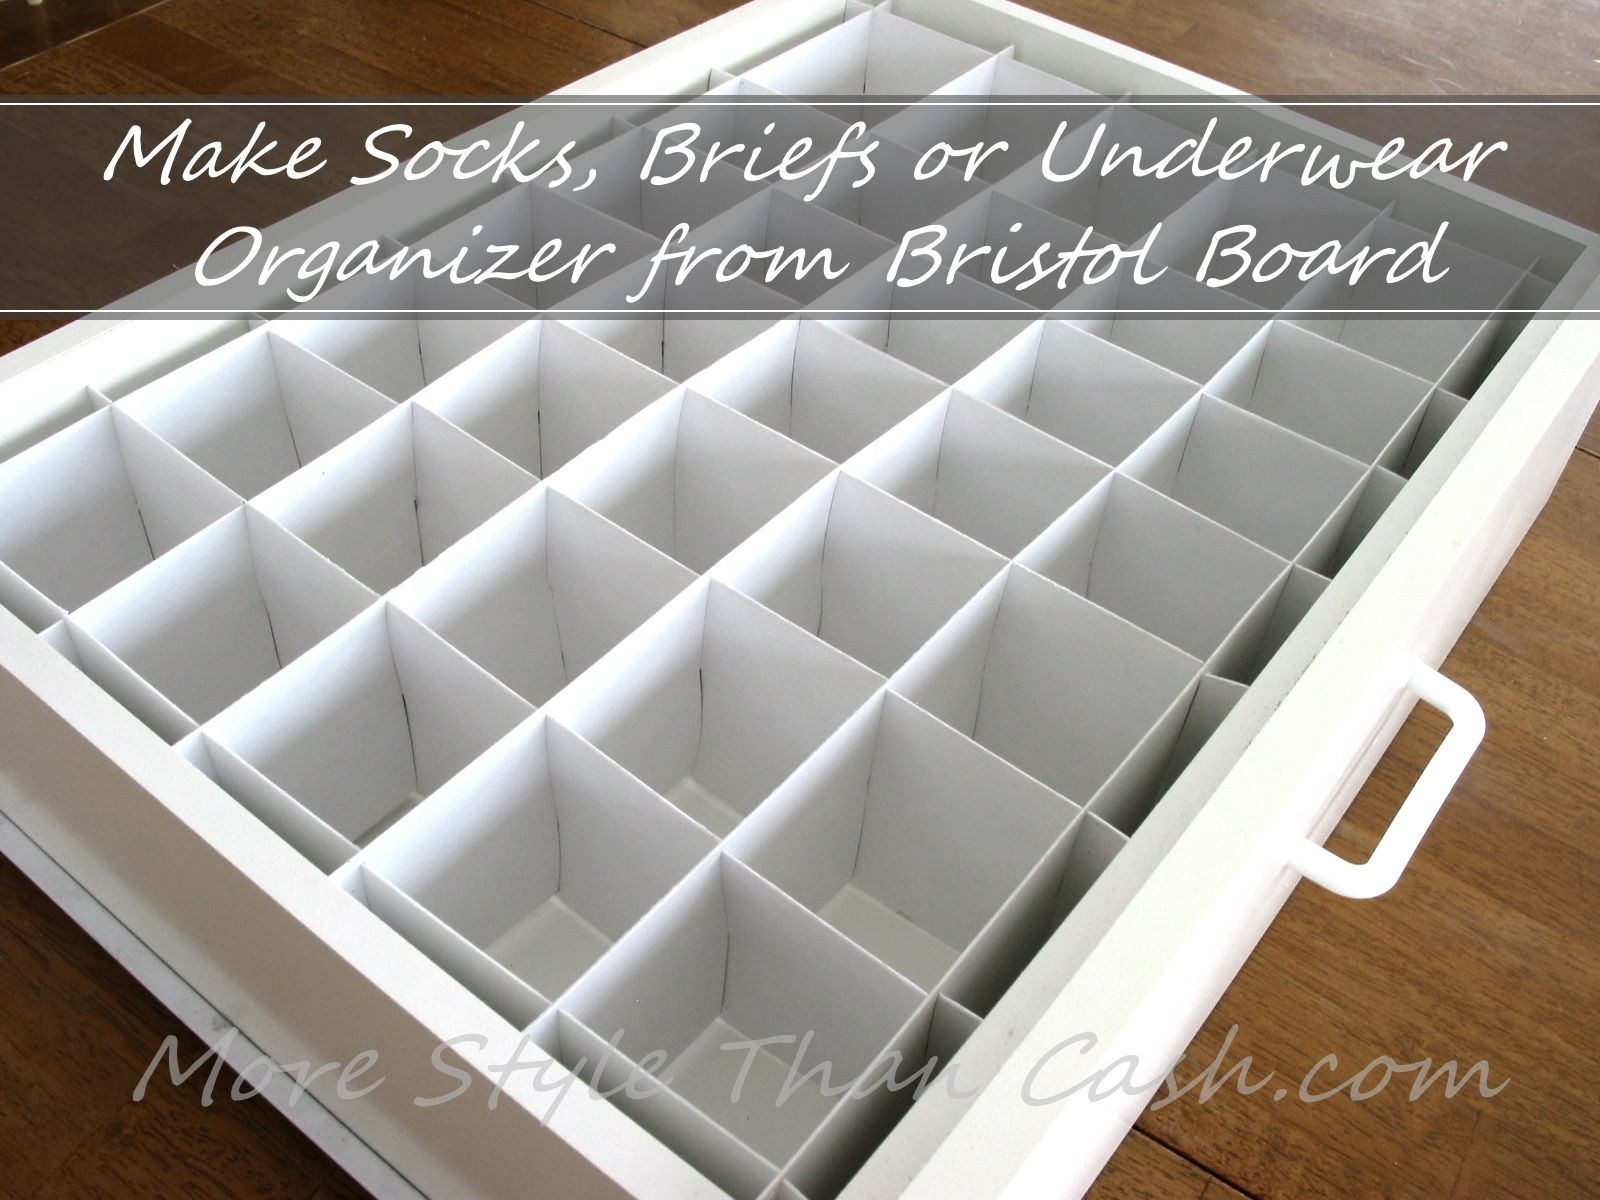 Make Socks Organizer From Bristol Board In 2019 Storage